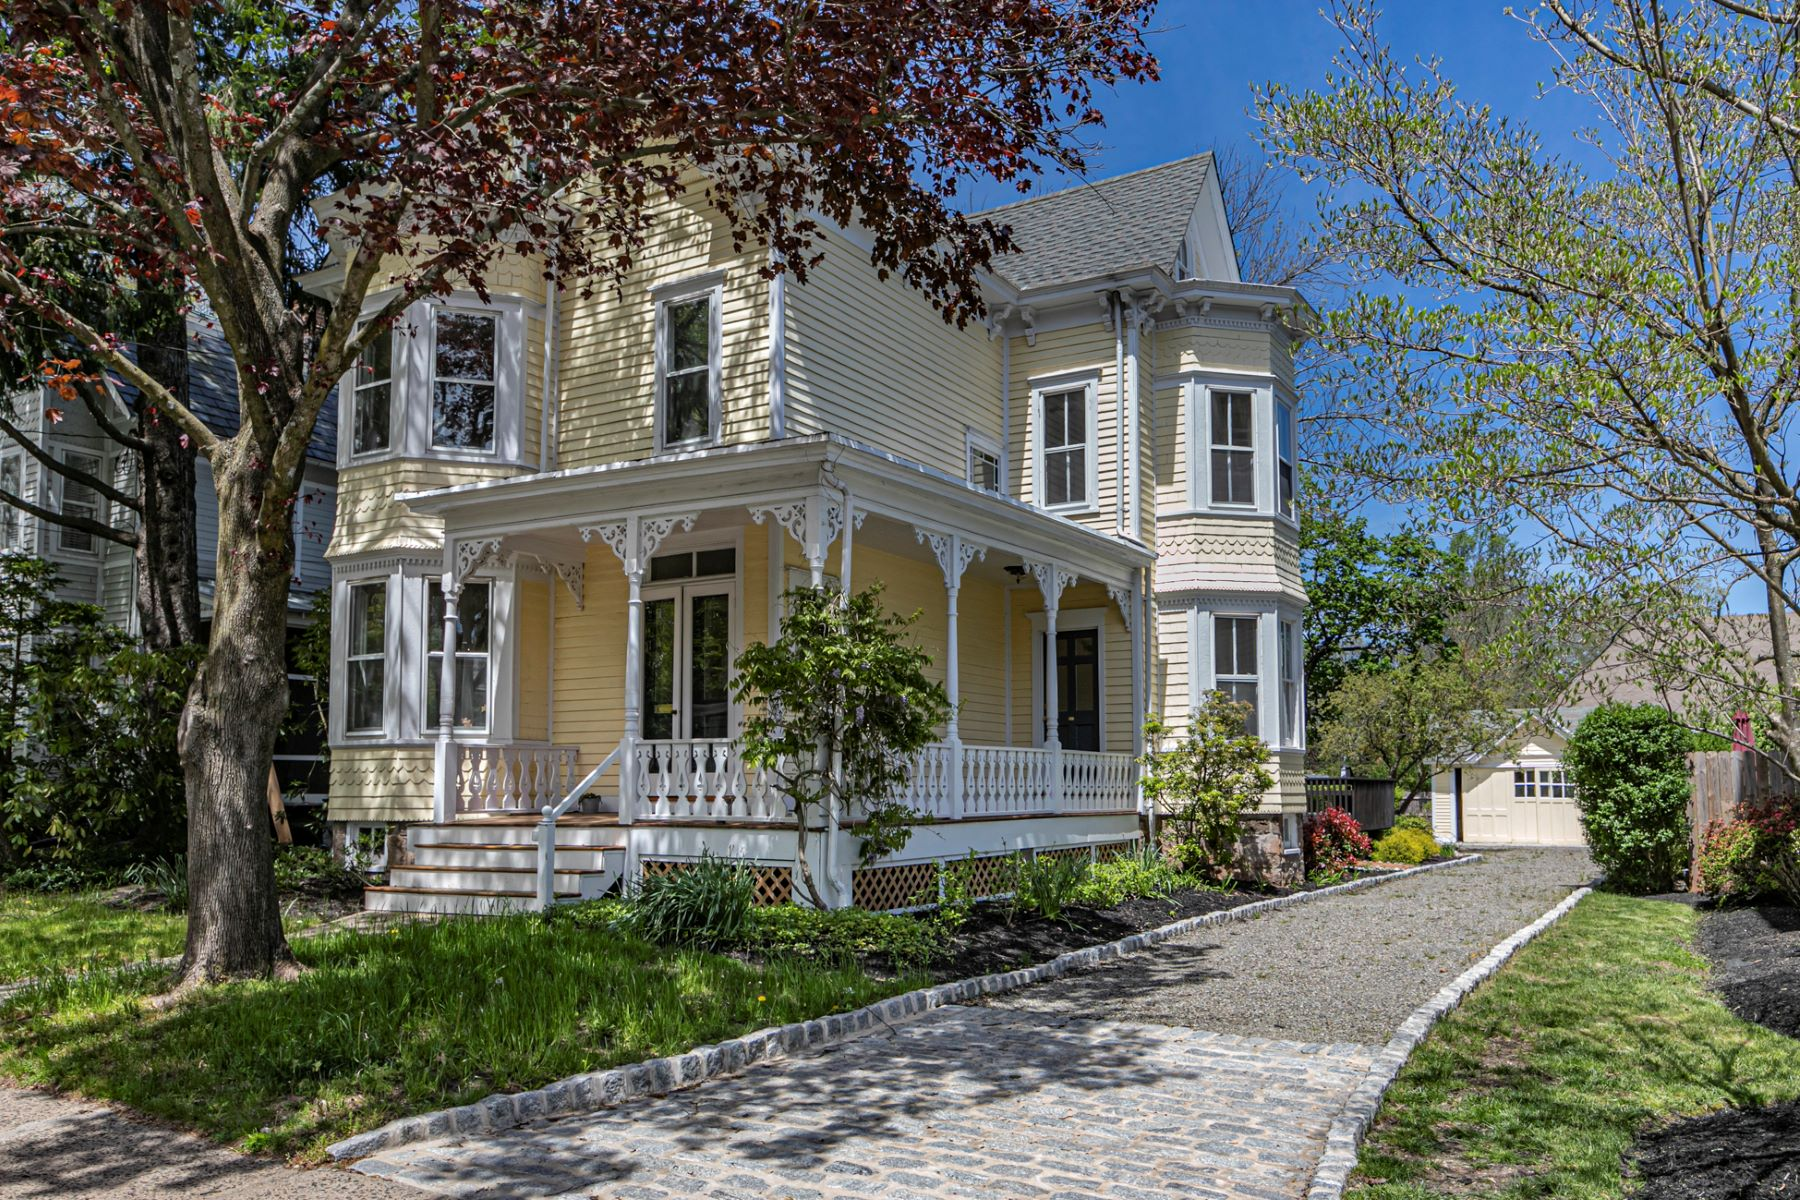 Property للـ Sale في Historic Charm Restored With Every Modern Amenity 25 East Delaware Avenue, Pennington, New Jersey 08534 United States